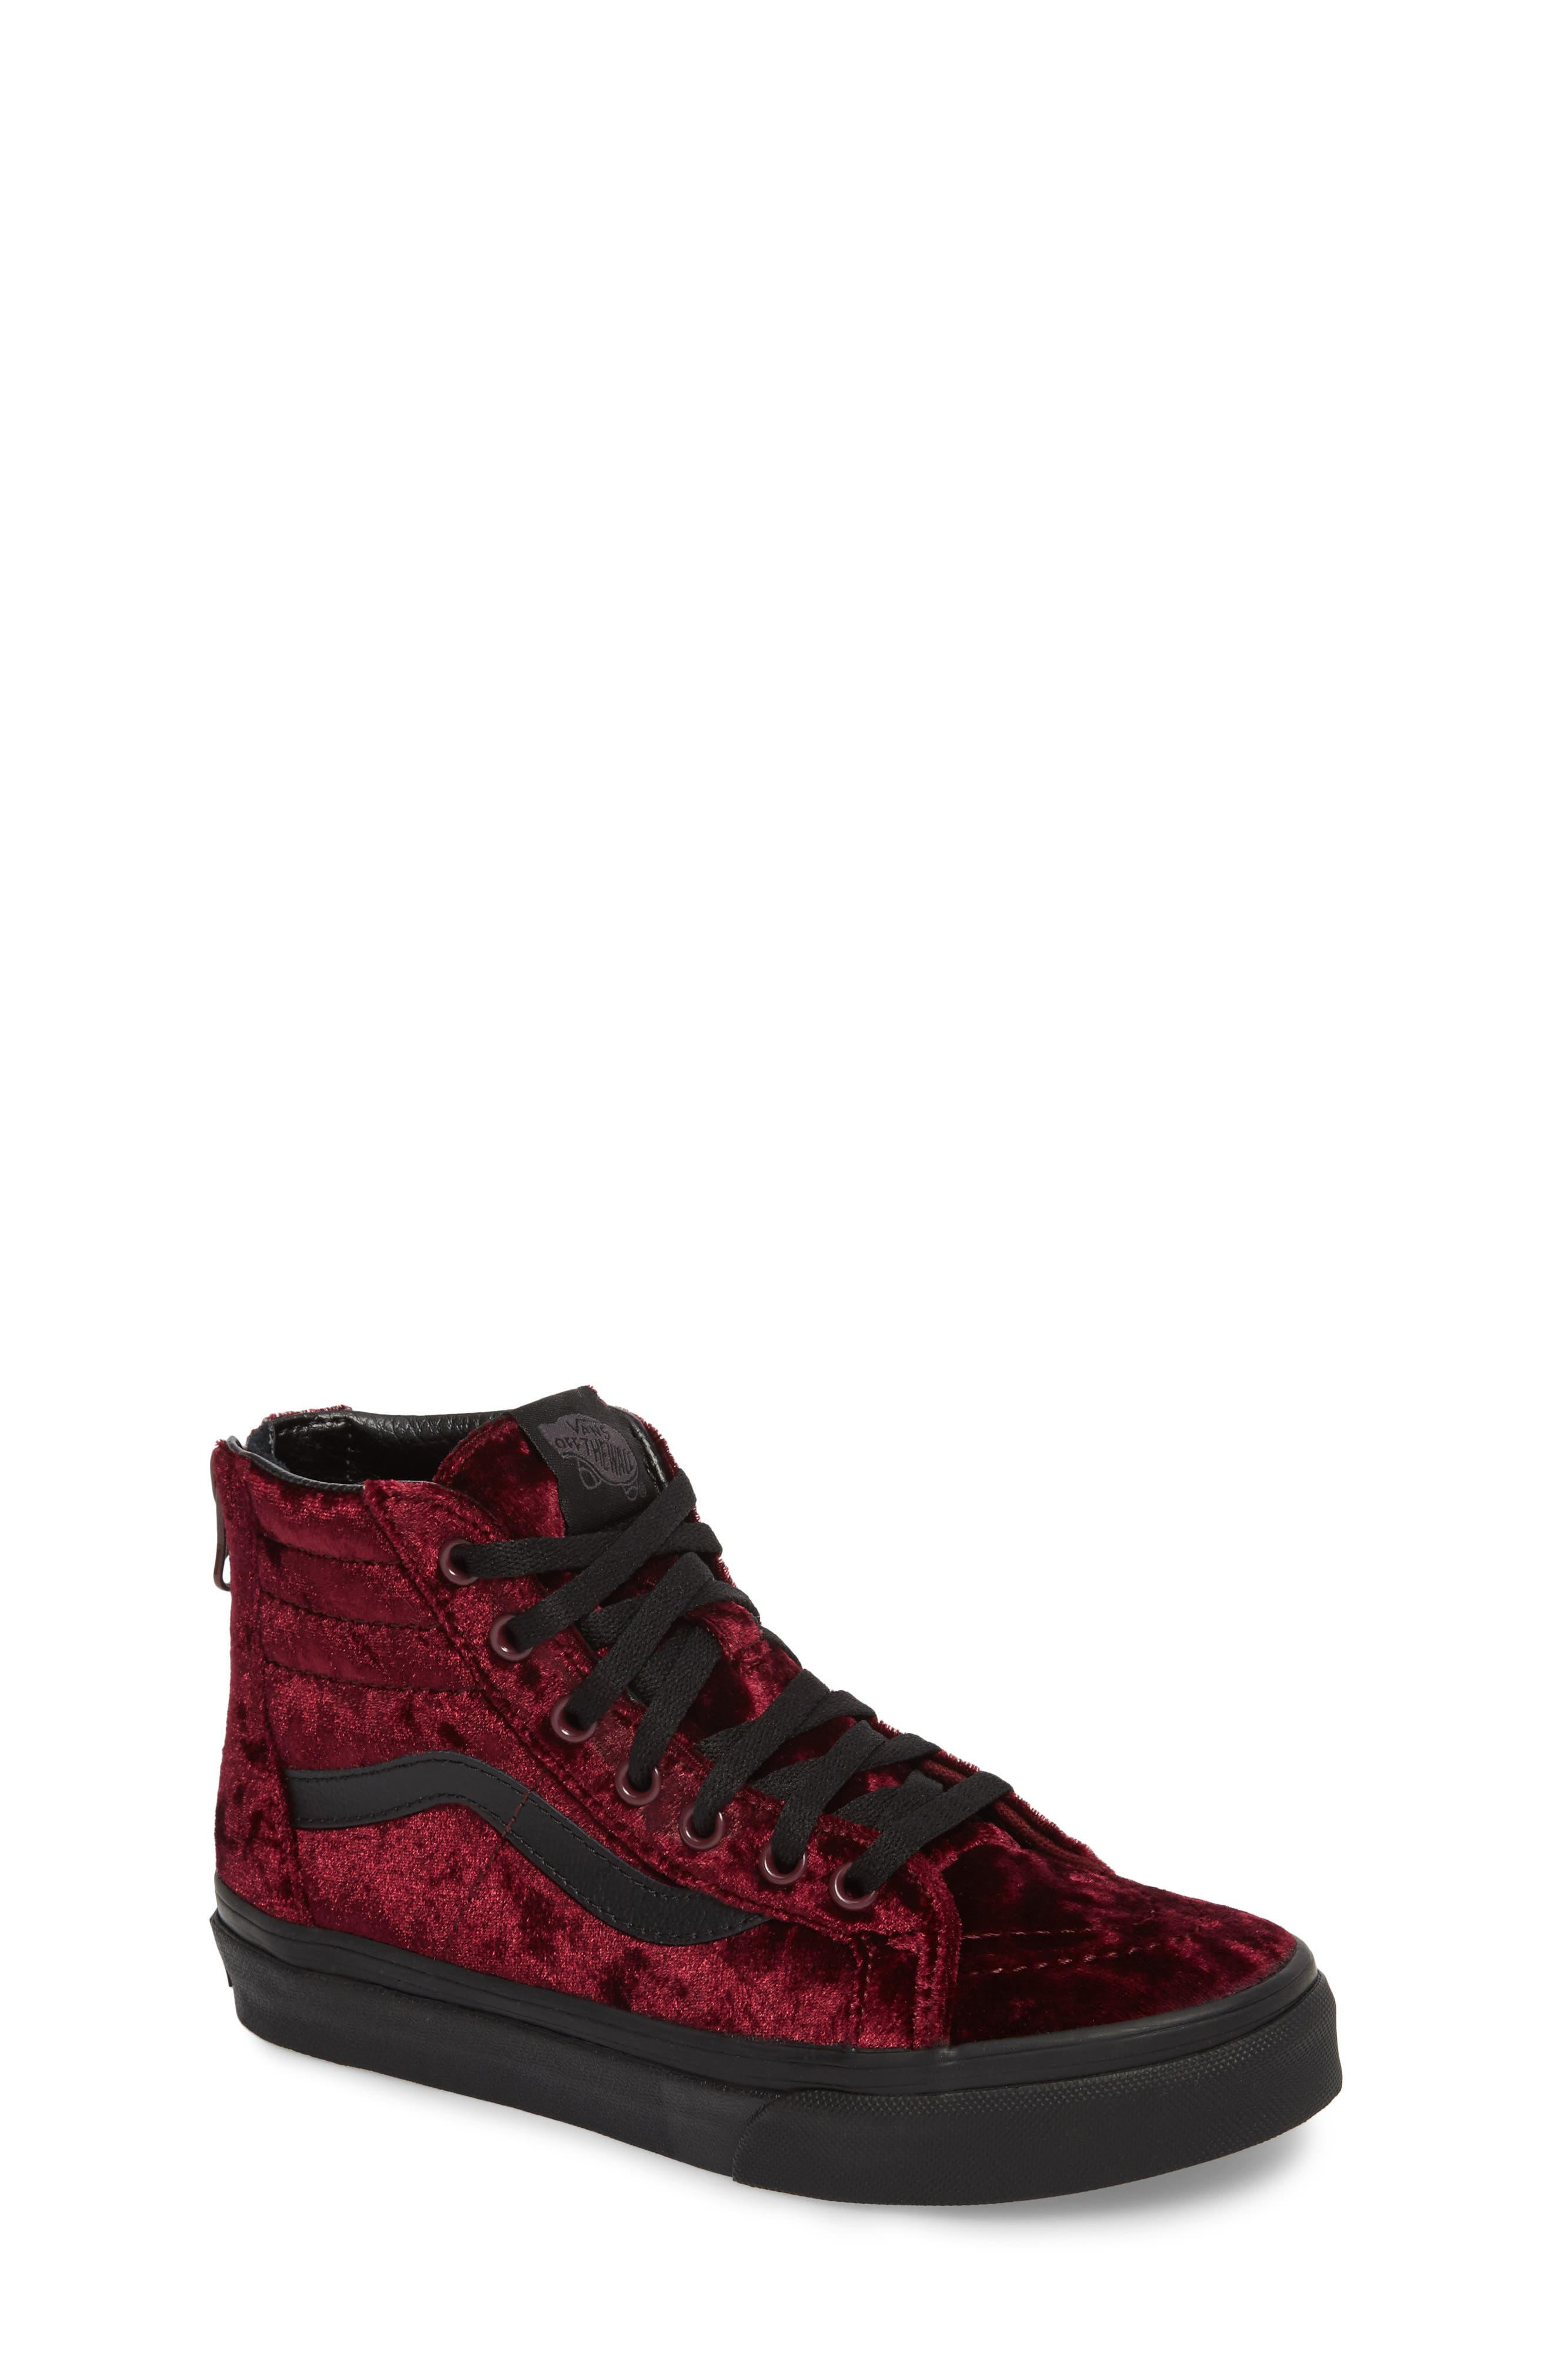 SK8-Hi Zip Sneaker,                             Main thumbnail 1, color,                             Red/ Black